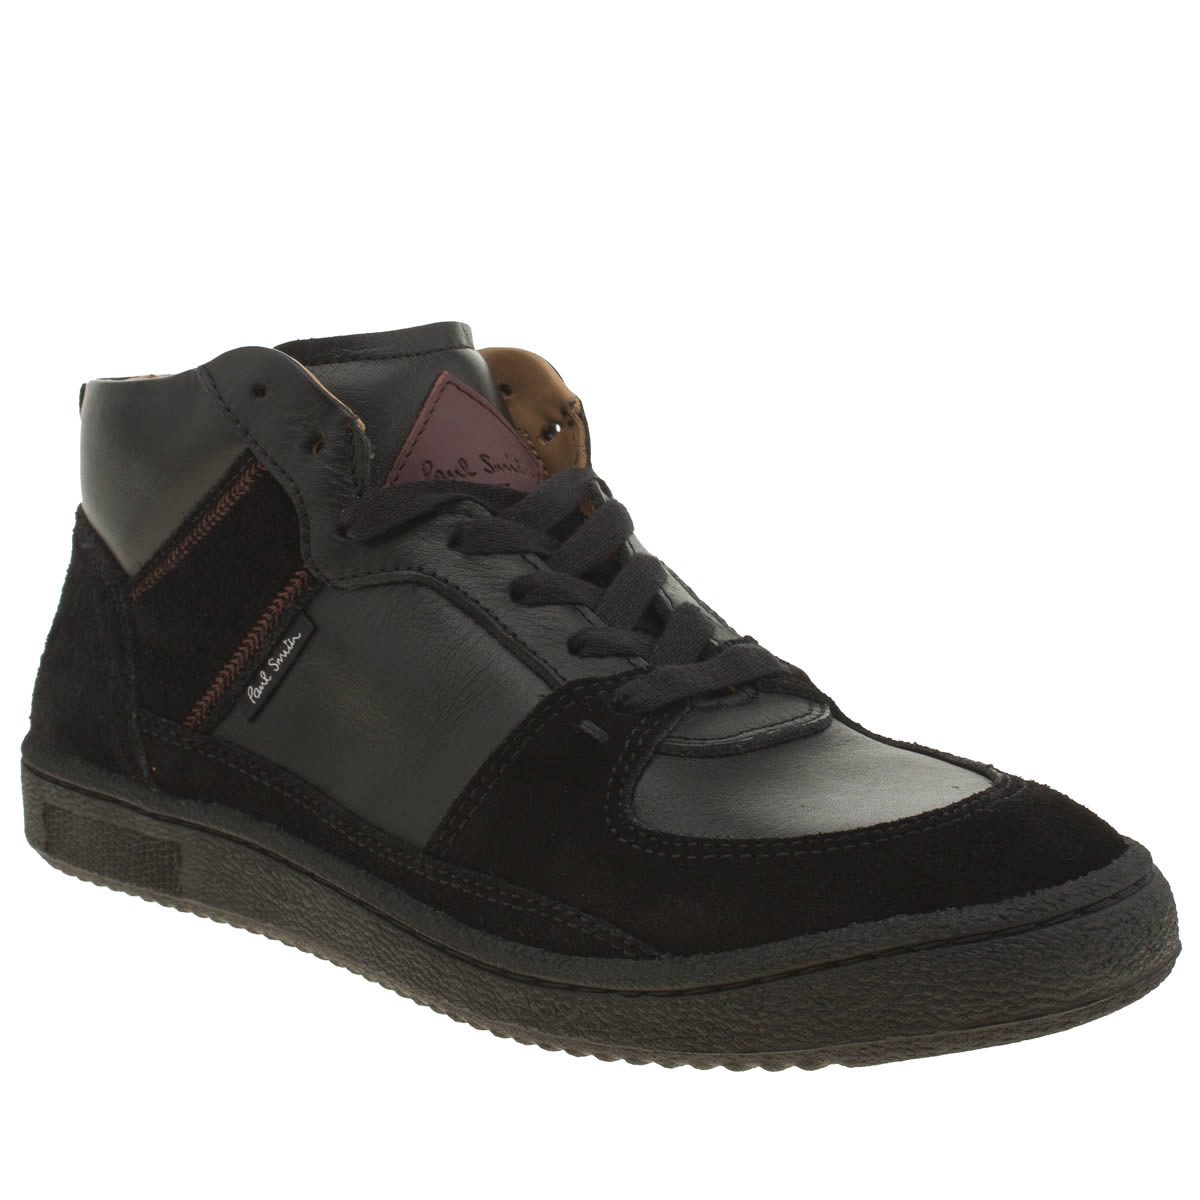 Paul Smith Shoes Paul Smith Shoes Black Dune Trainers